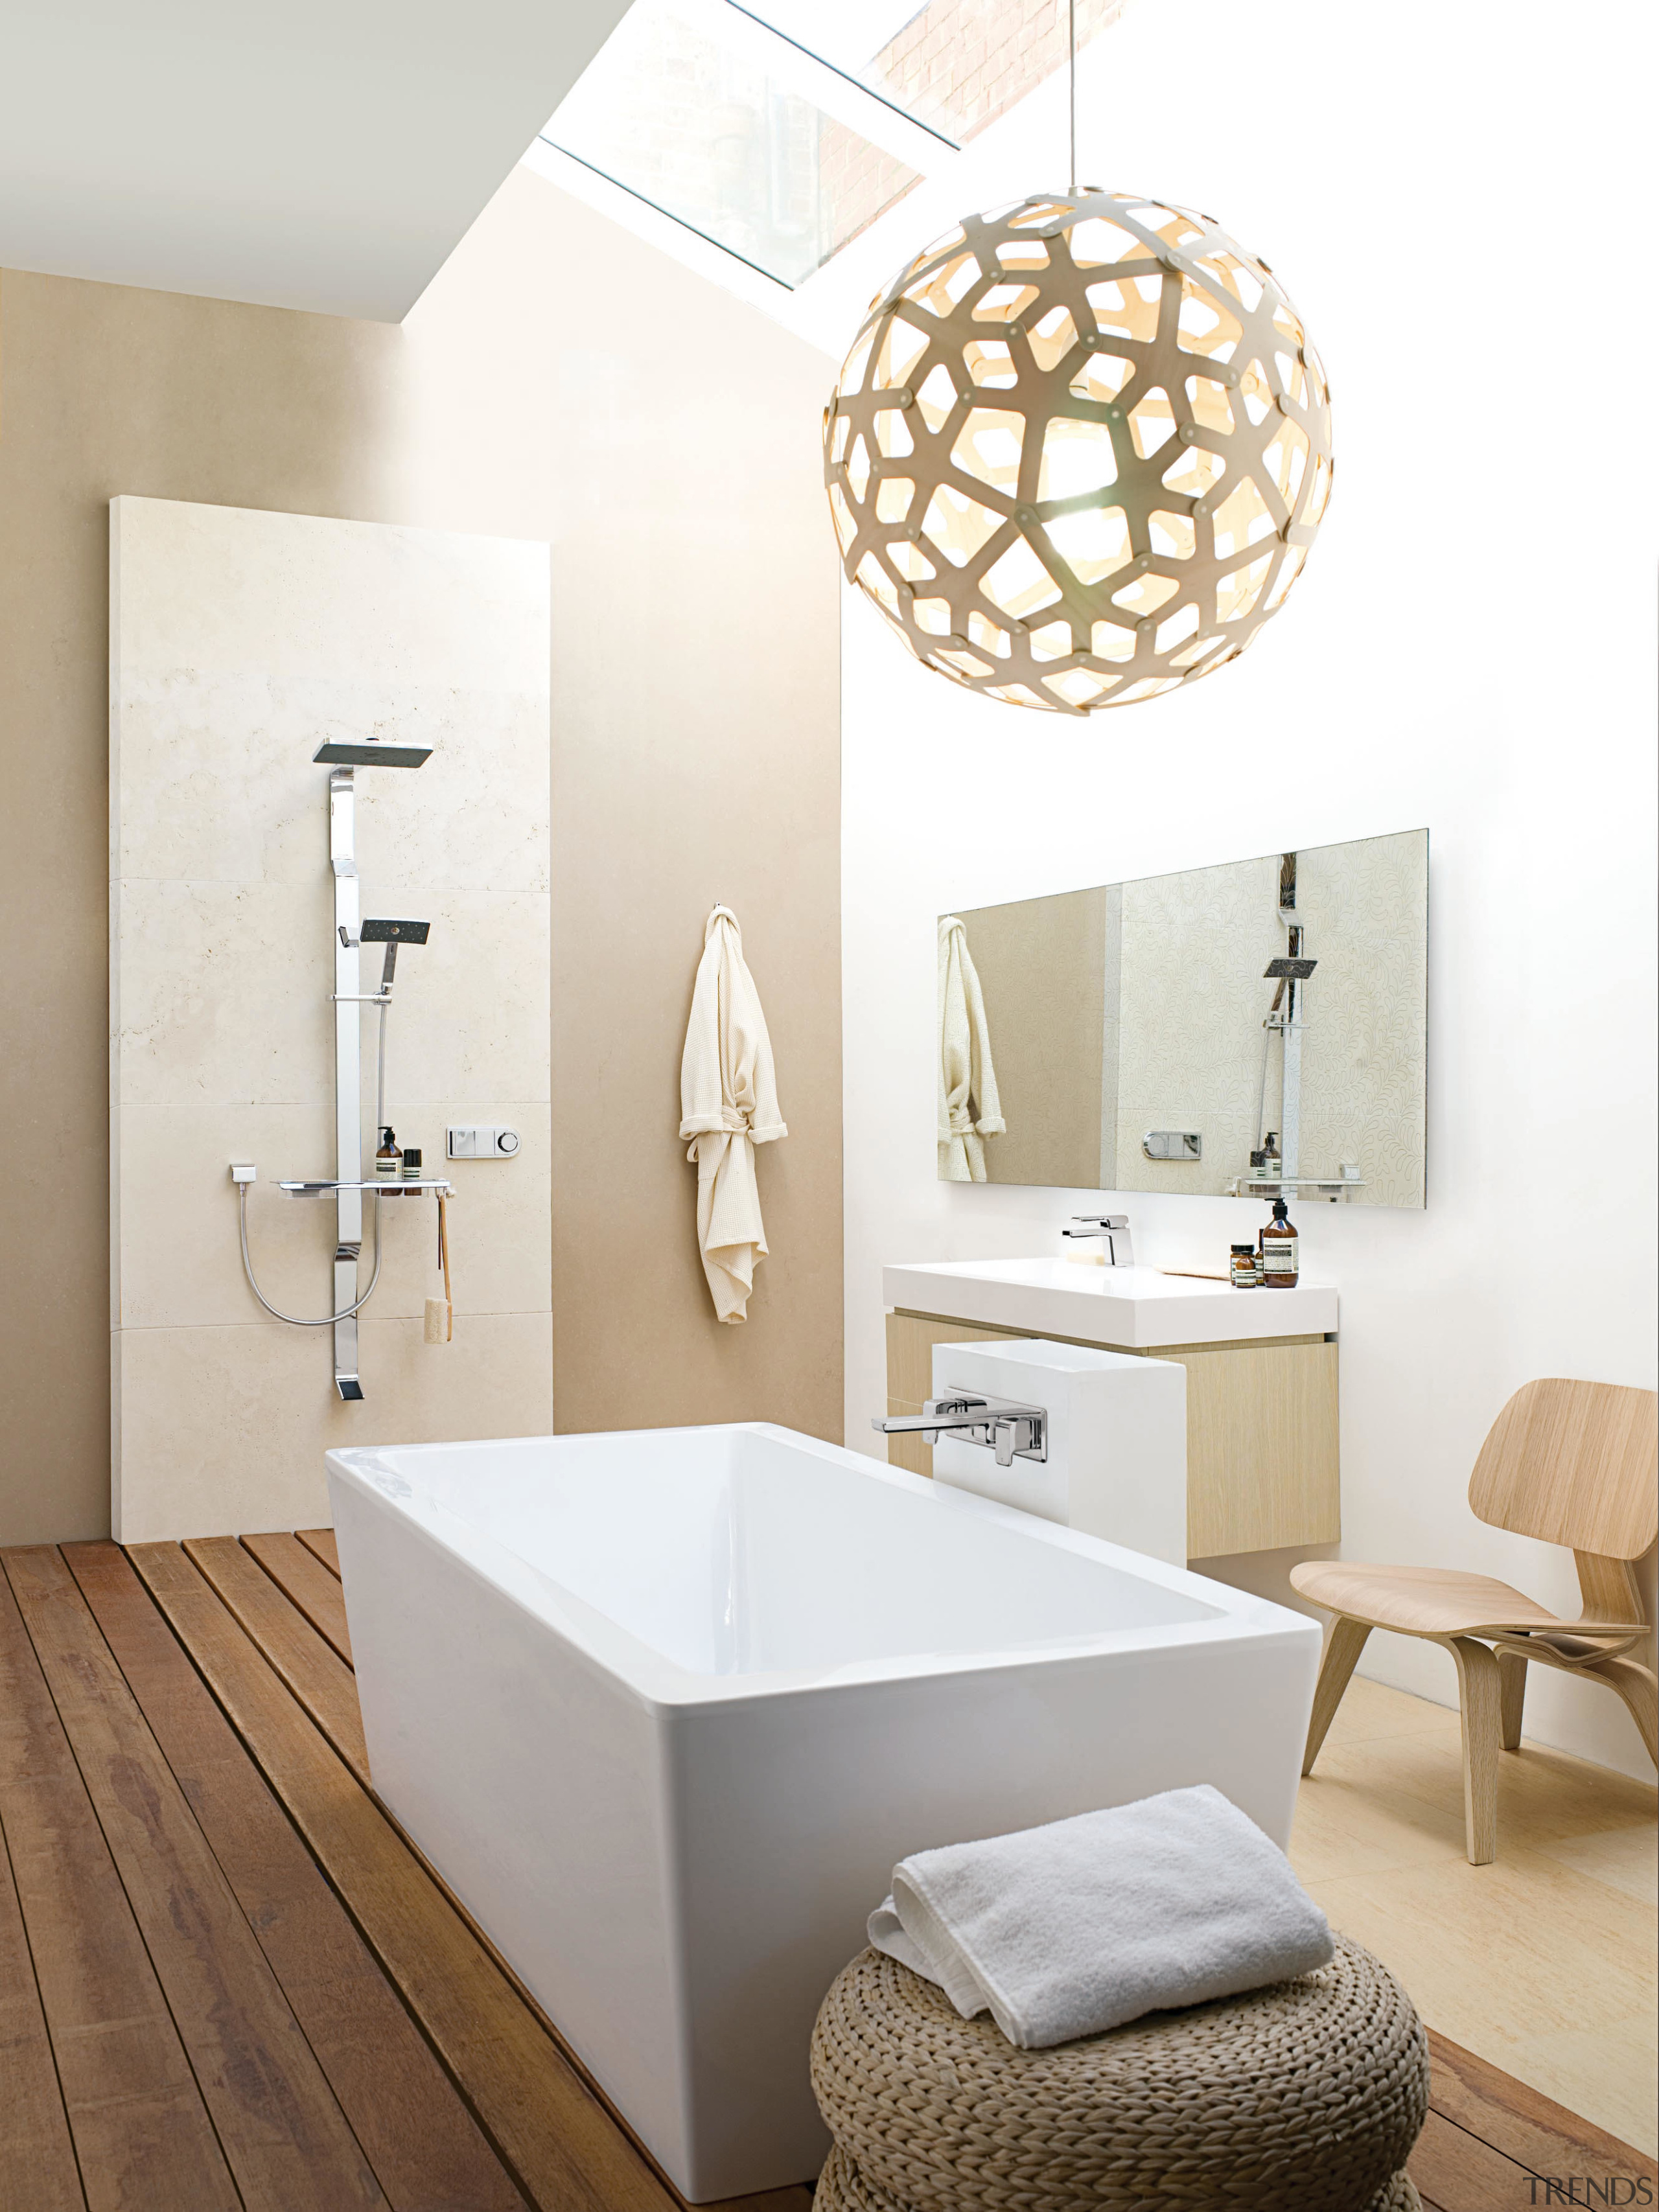 This predominently white contemporary, Scandinavian-style bathroom features timber bathroom, bathroom sink, ceramic, floor, interior design, plumbing fixture, product design, room, sink, tap, white